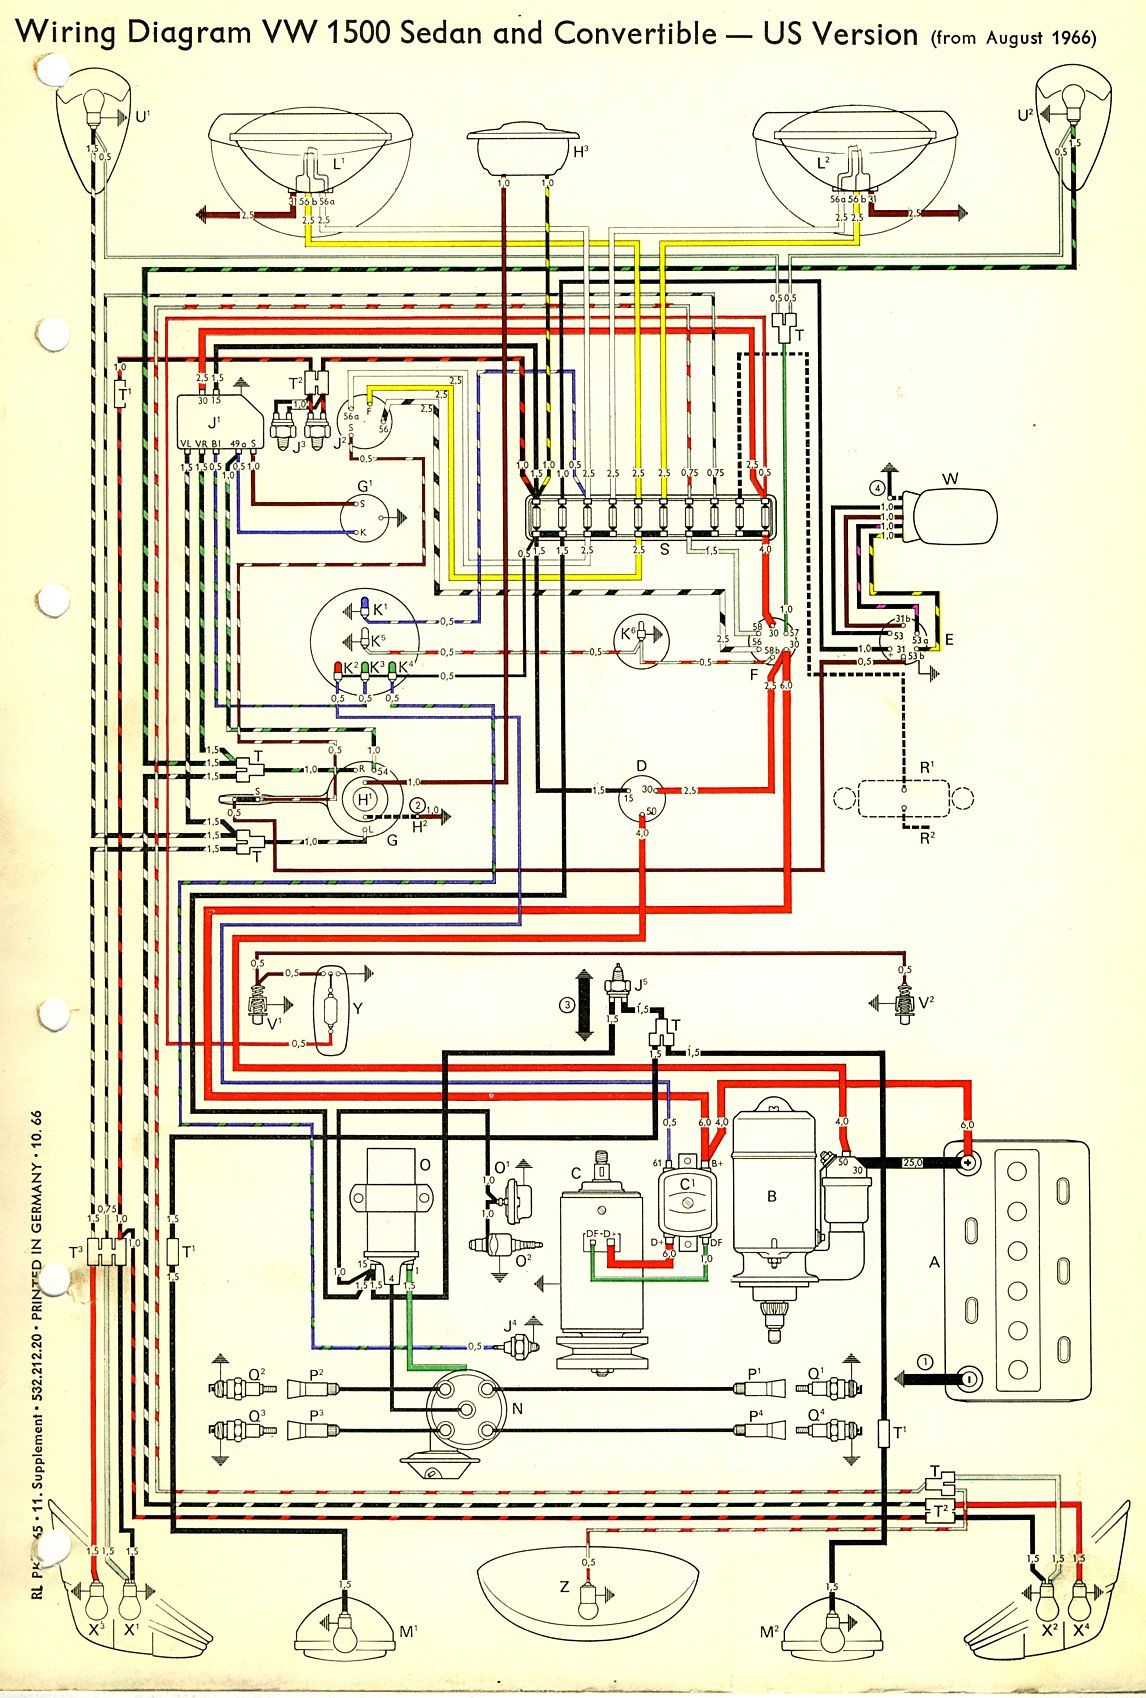 Circuit Diagram For Bug Engine Control Wiring Simple Fm Spy Using Transistor Gadgetronicx 1967 Beetle Usa Thegoldenbug Com Best Vw Rh Pinterest Zapper